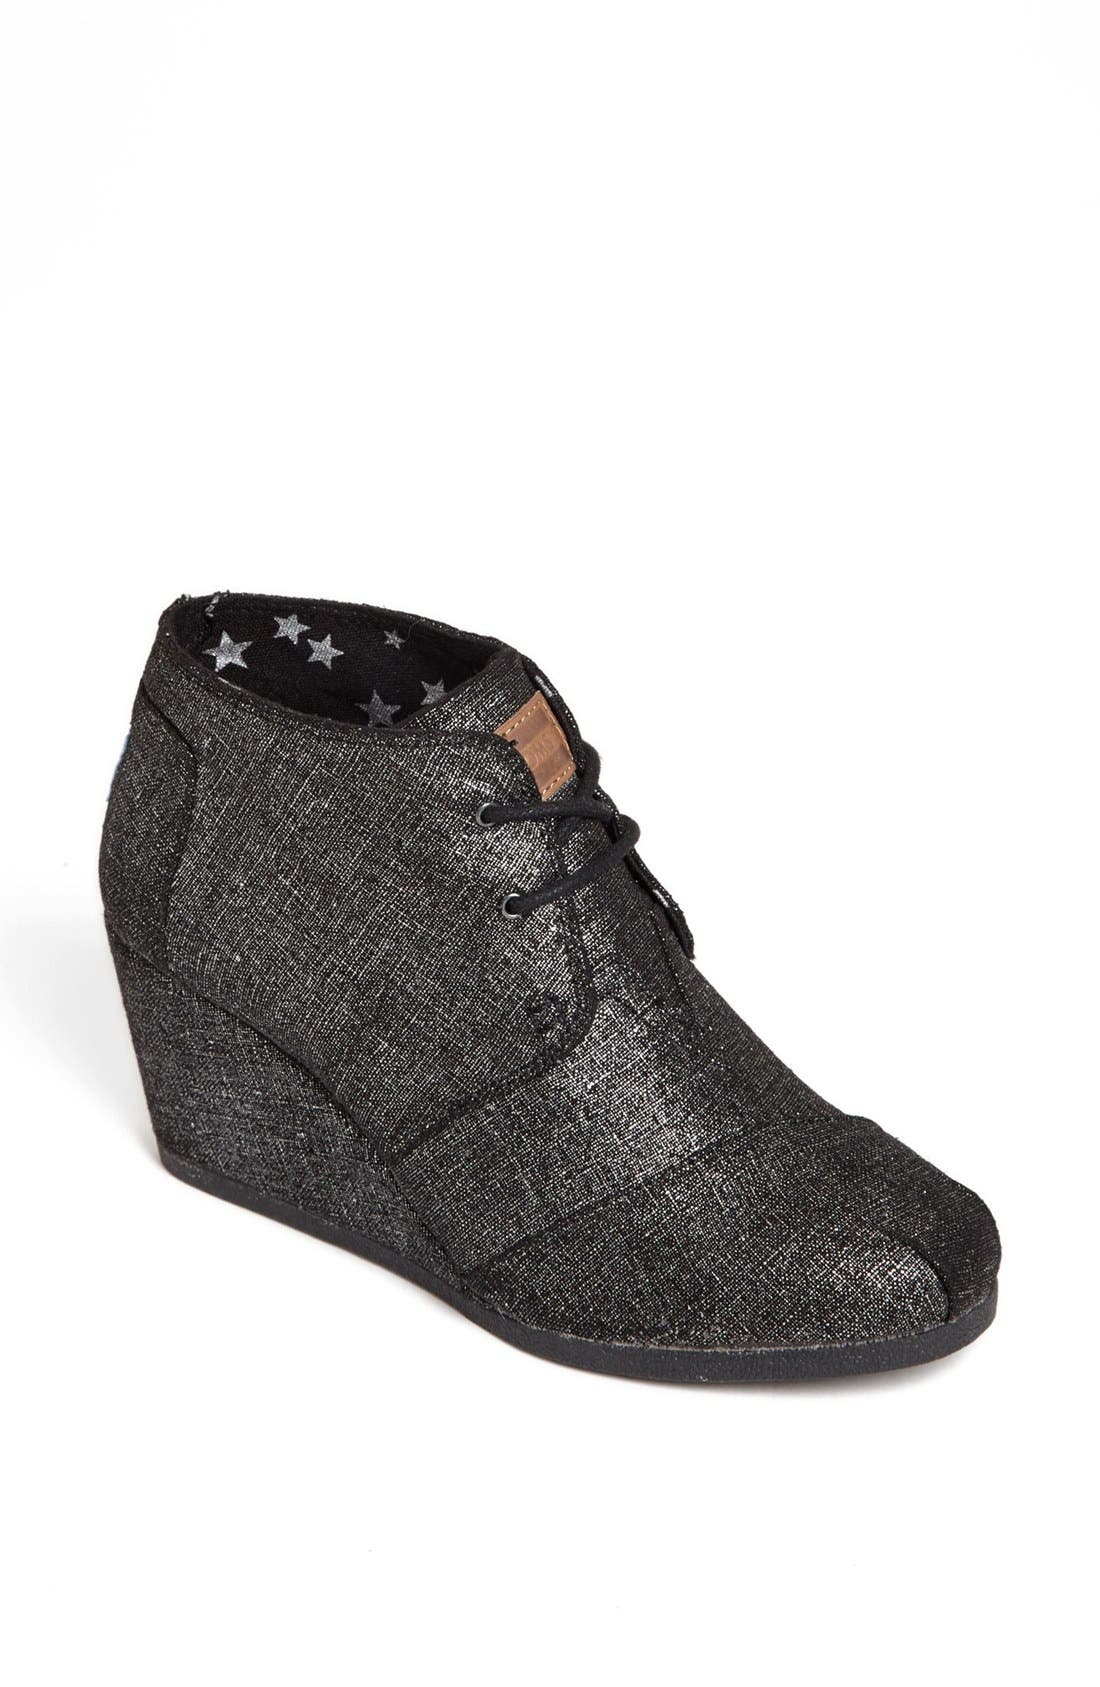 Alternate Image 1 Selected - TOMS 'Desert' Metallic Linen Bootie (Women)